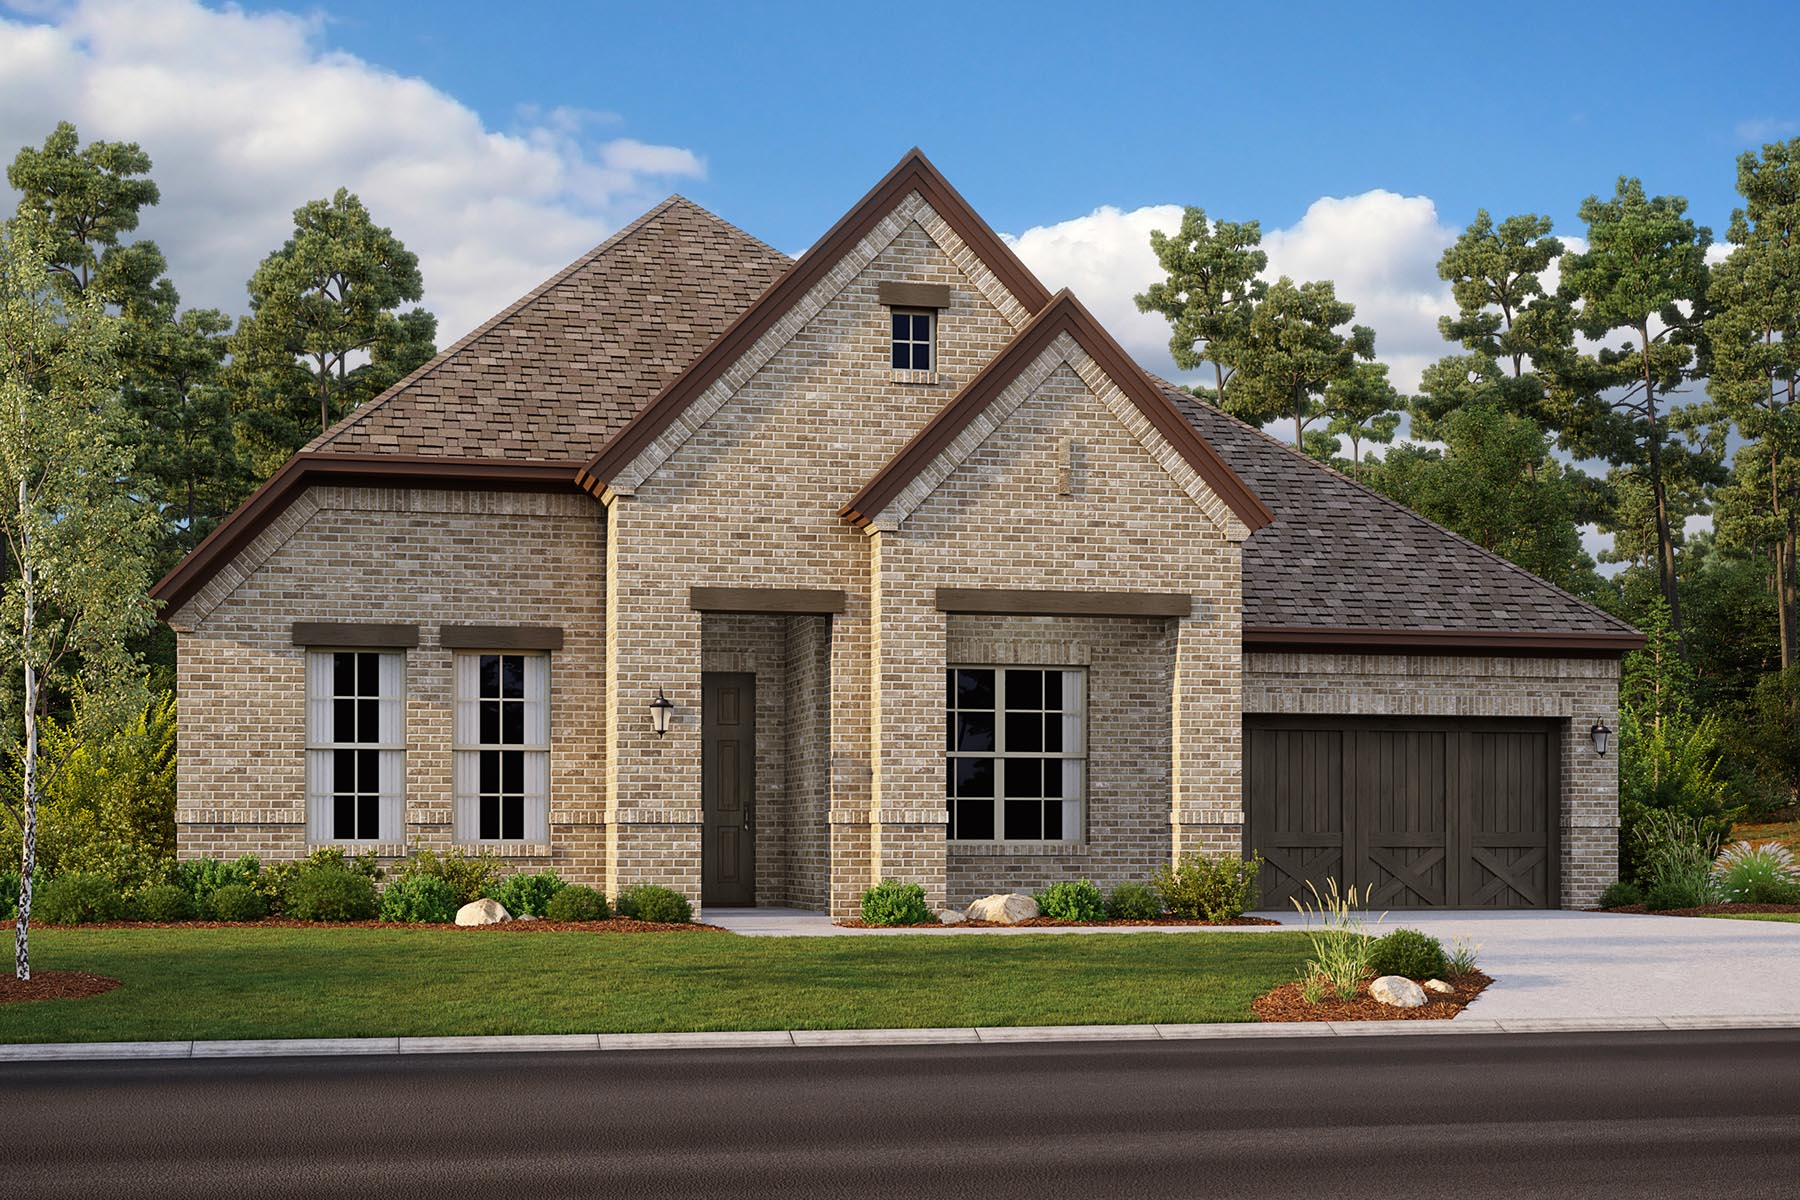 Avery II Plan DAL_Avery_ElevationH_1800x1200 at Villages of Creekwood in Frisco Texas by Mattamy Homes